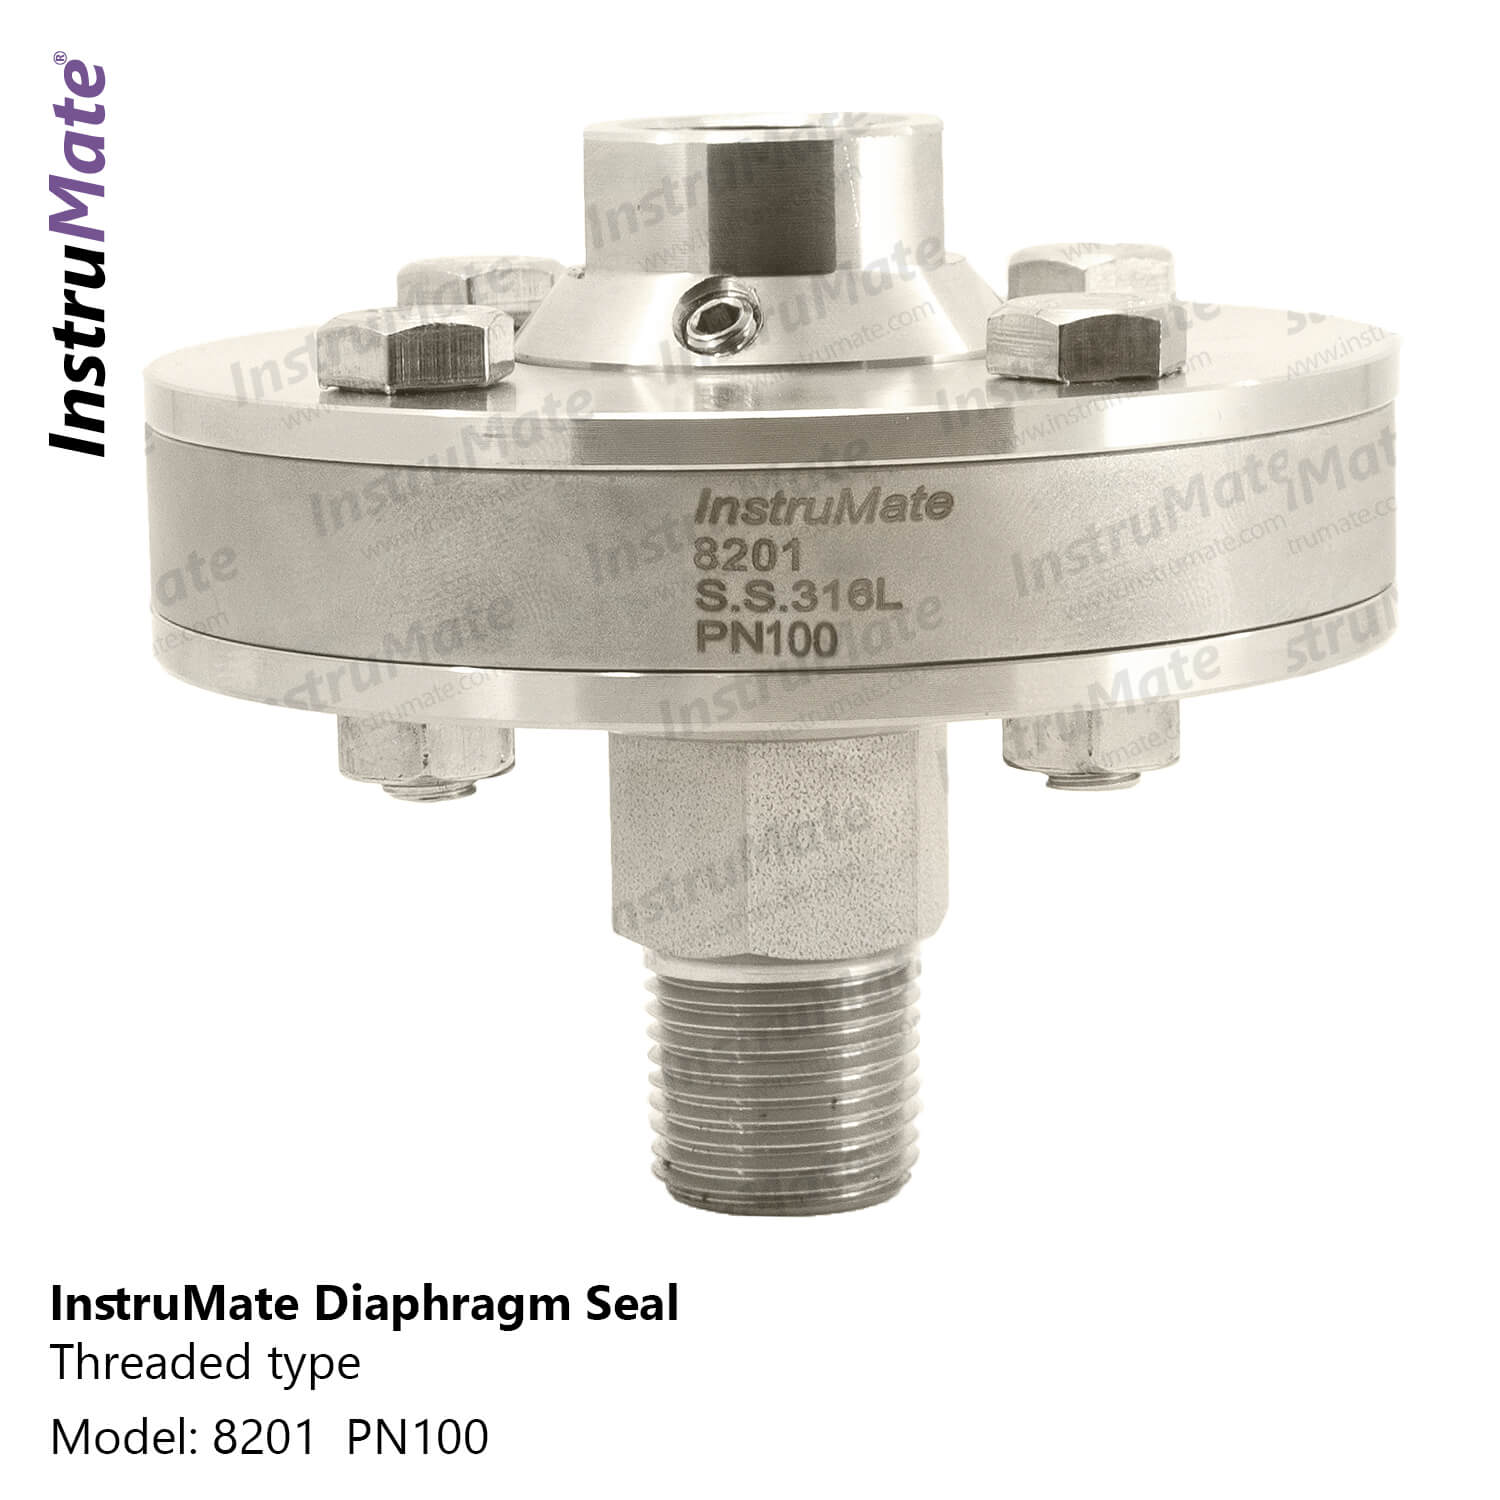 Diaphragm seal with threaded connection - 8201 - InstruMate